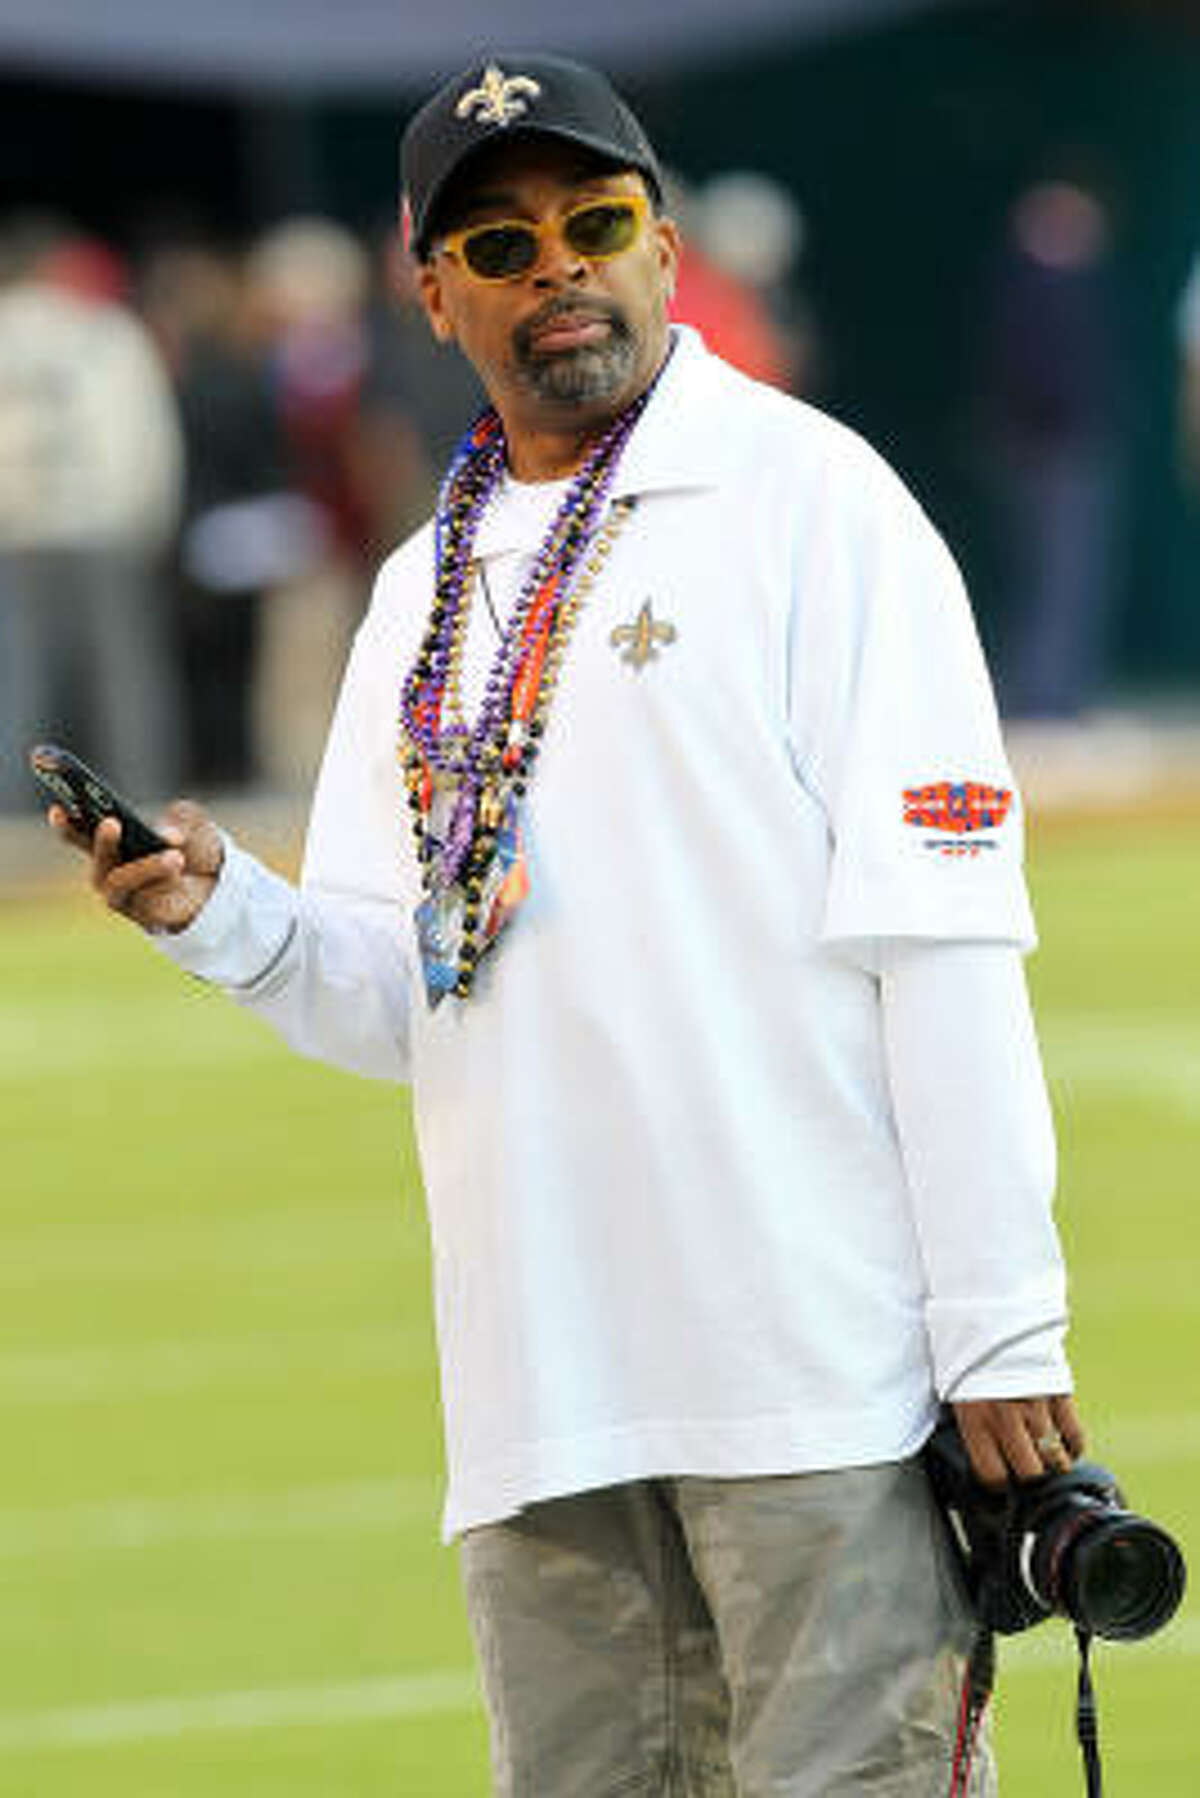 Director Spike Lee watches warms-ups on the field prior to the start of Super Bowl XLIV.